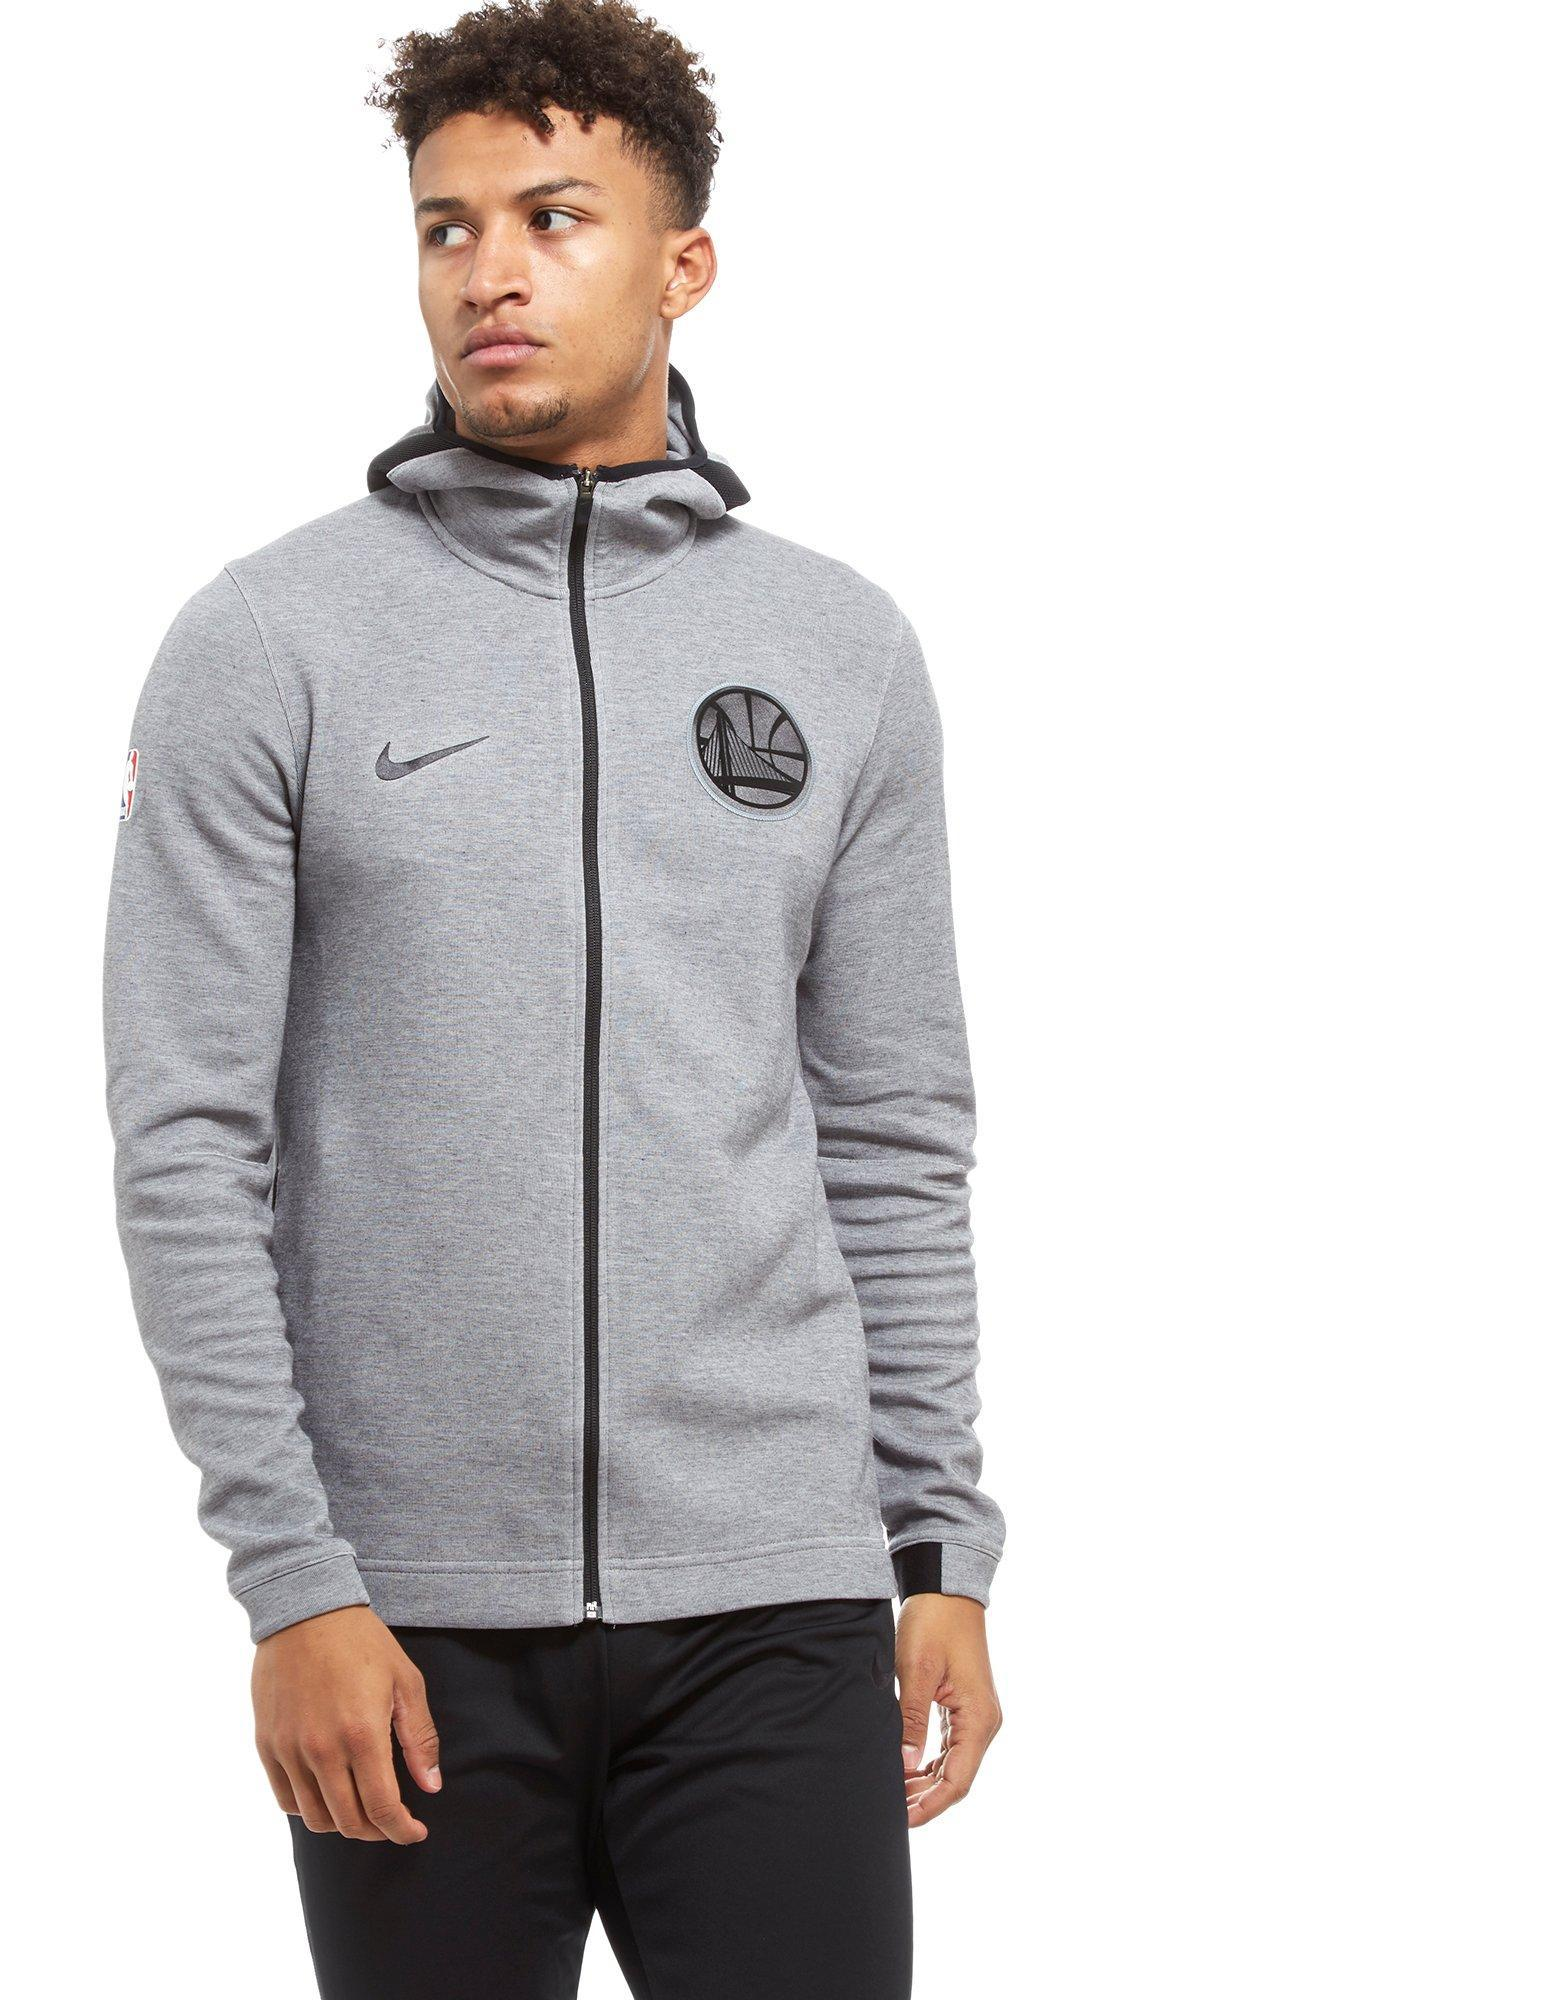 07c7387b76ec Nike Nba Golden State Warriors Therma Flex Hoodie in Gray for Men - Lyst